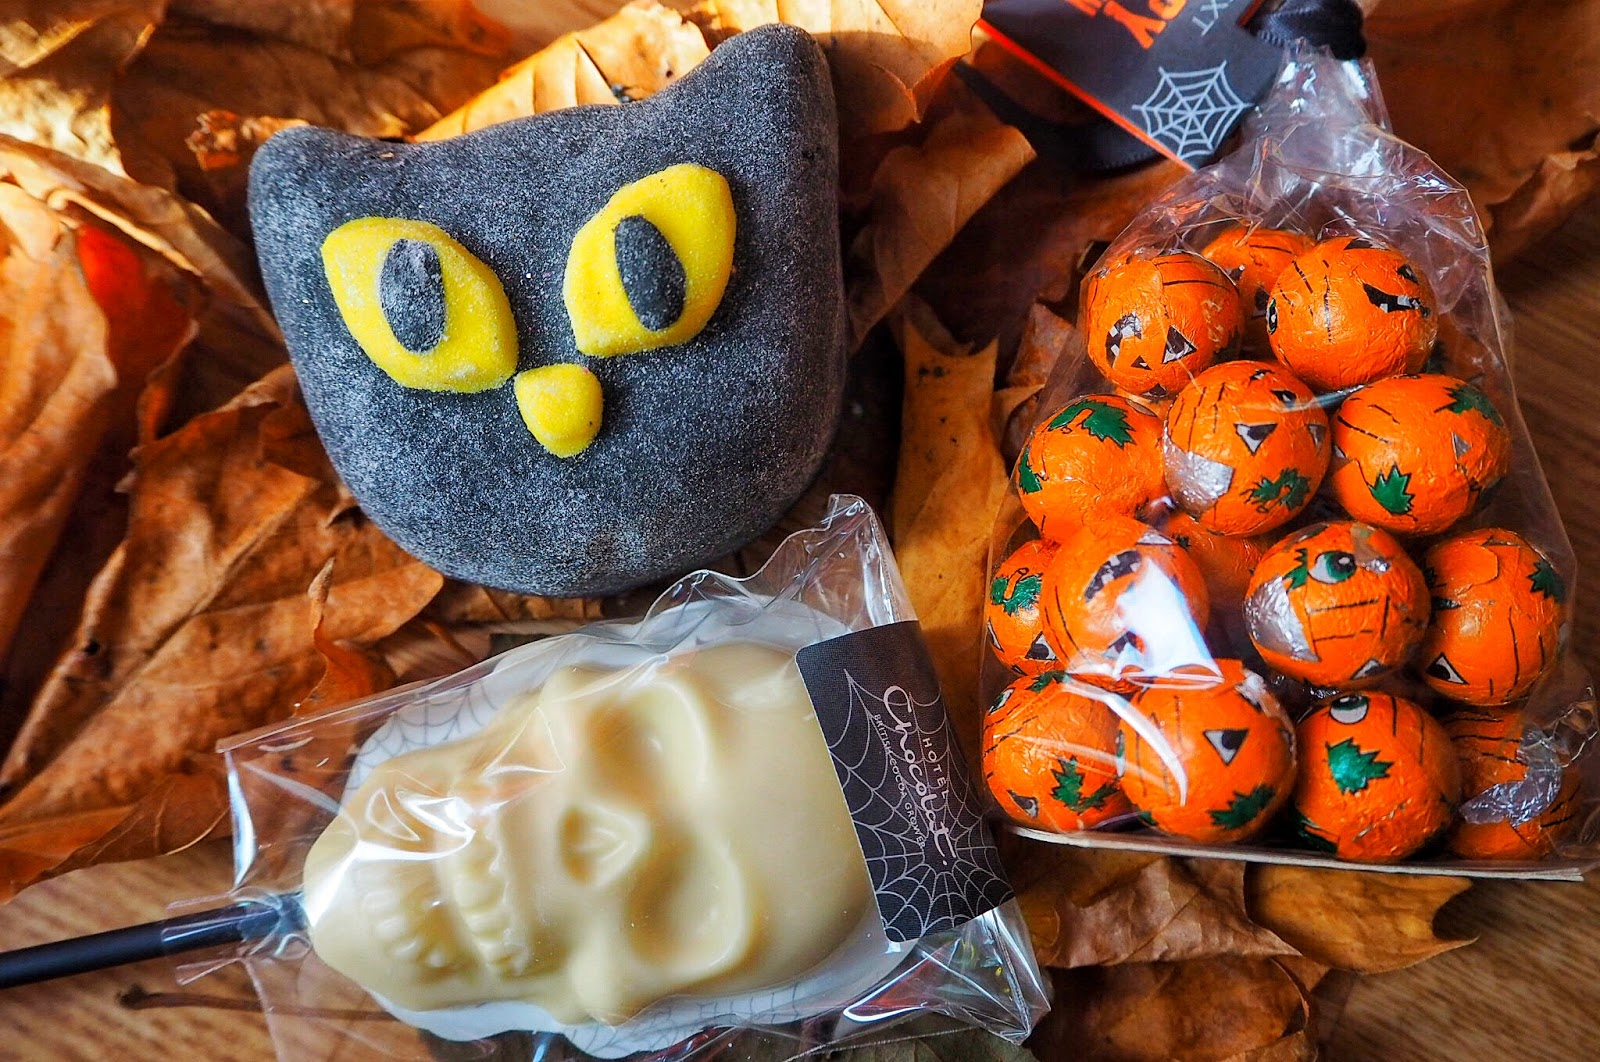 Lush, Halloween, 2017, Bath bombs, Bubble Bars, Autumn, Giveaway, Rafflecopter, Win, Freebie